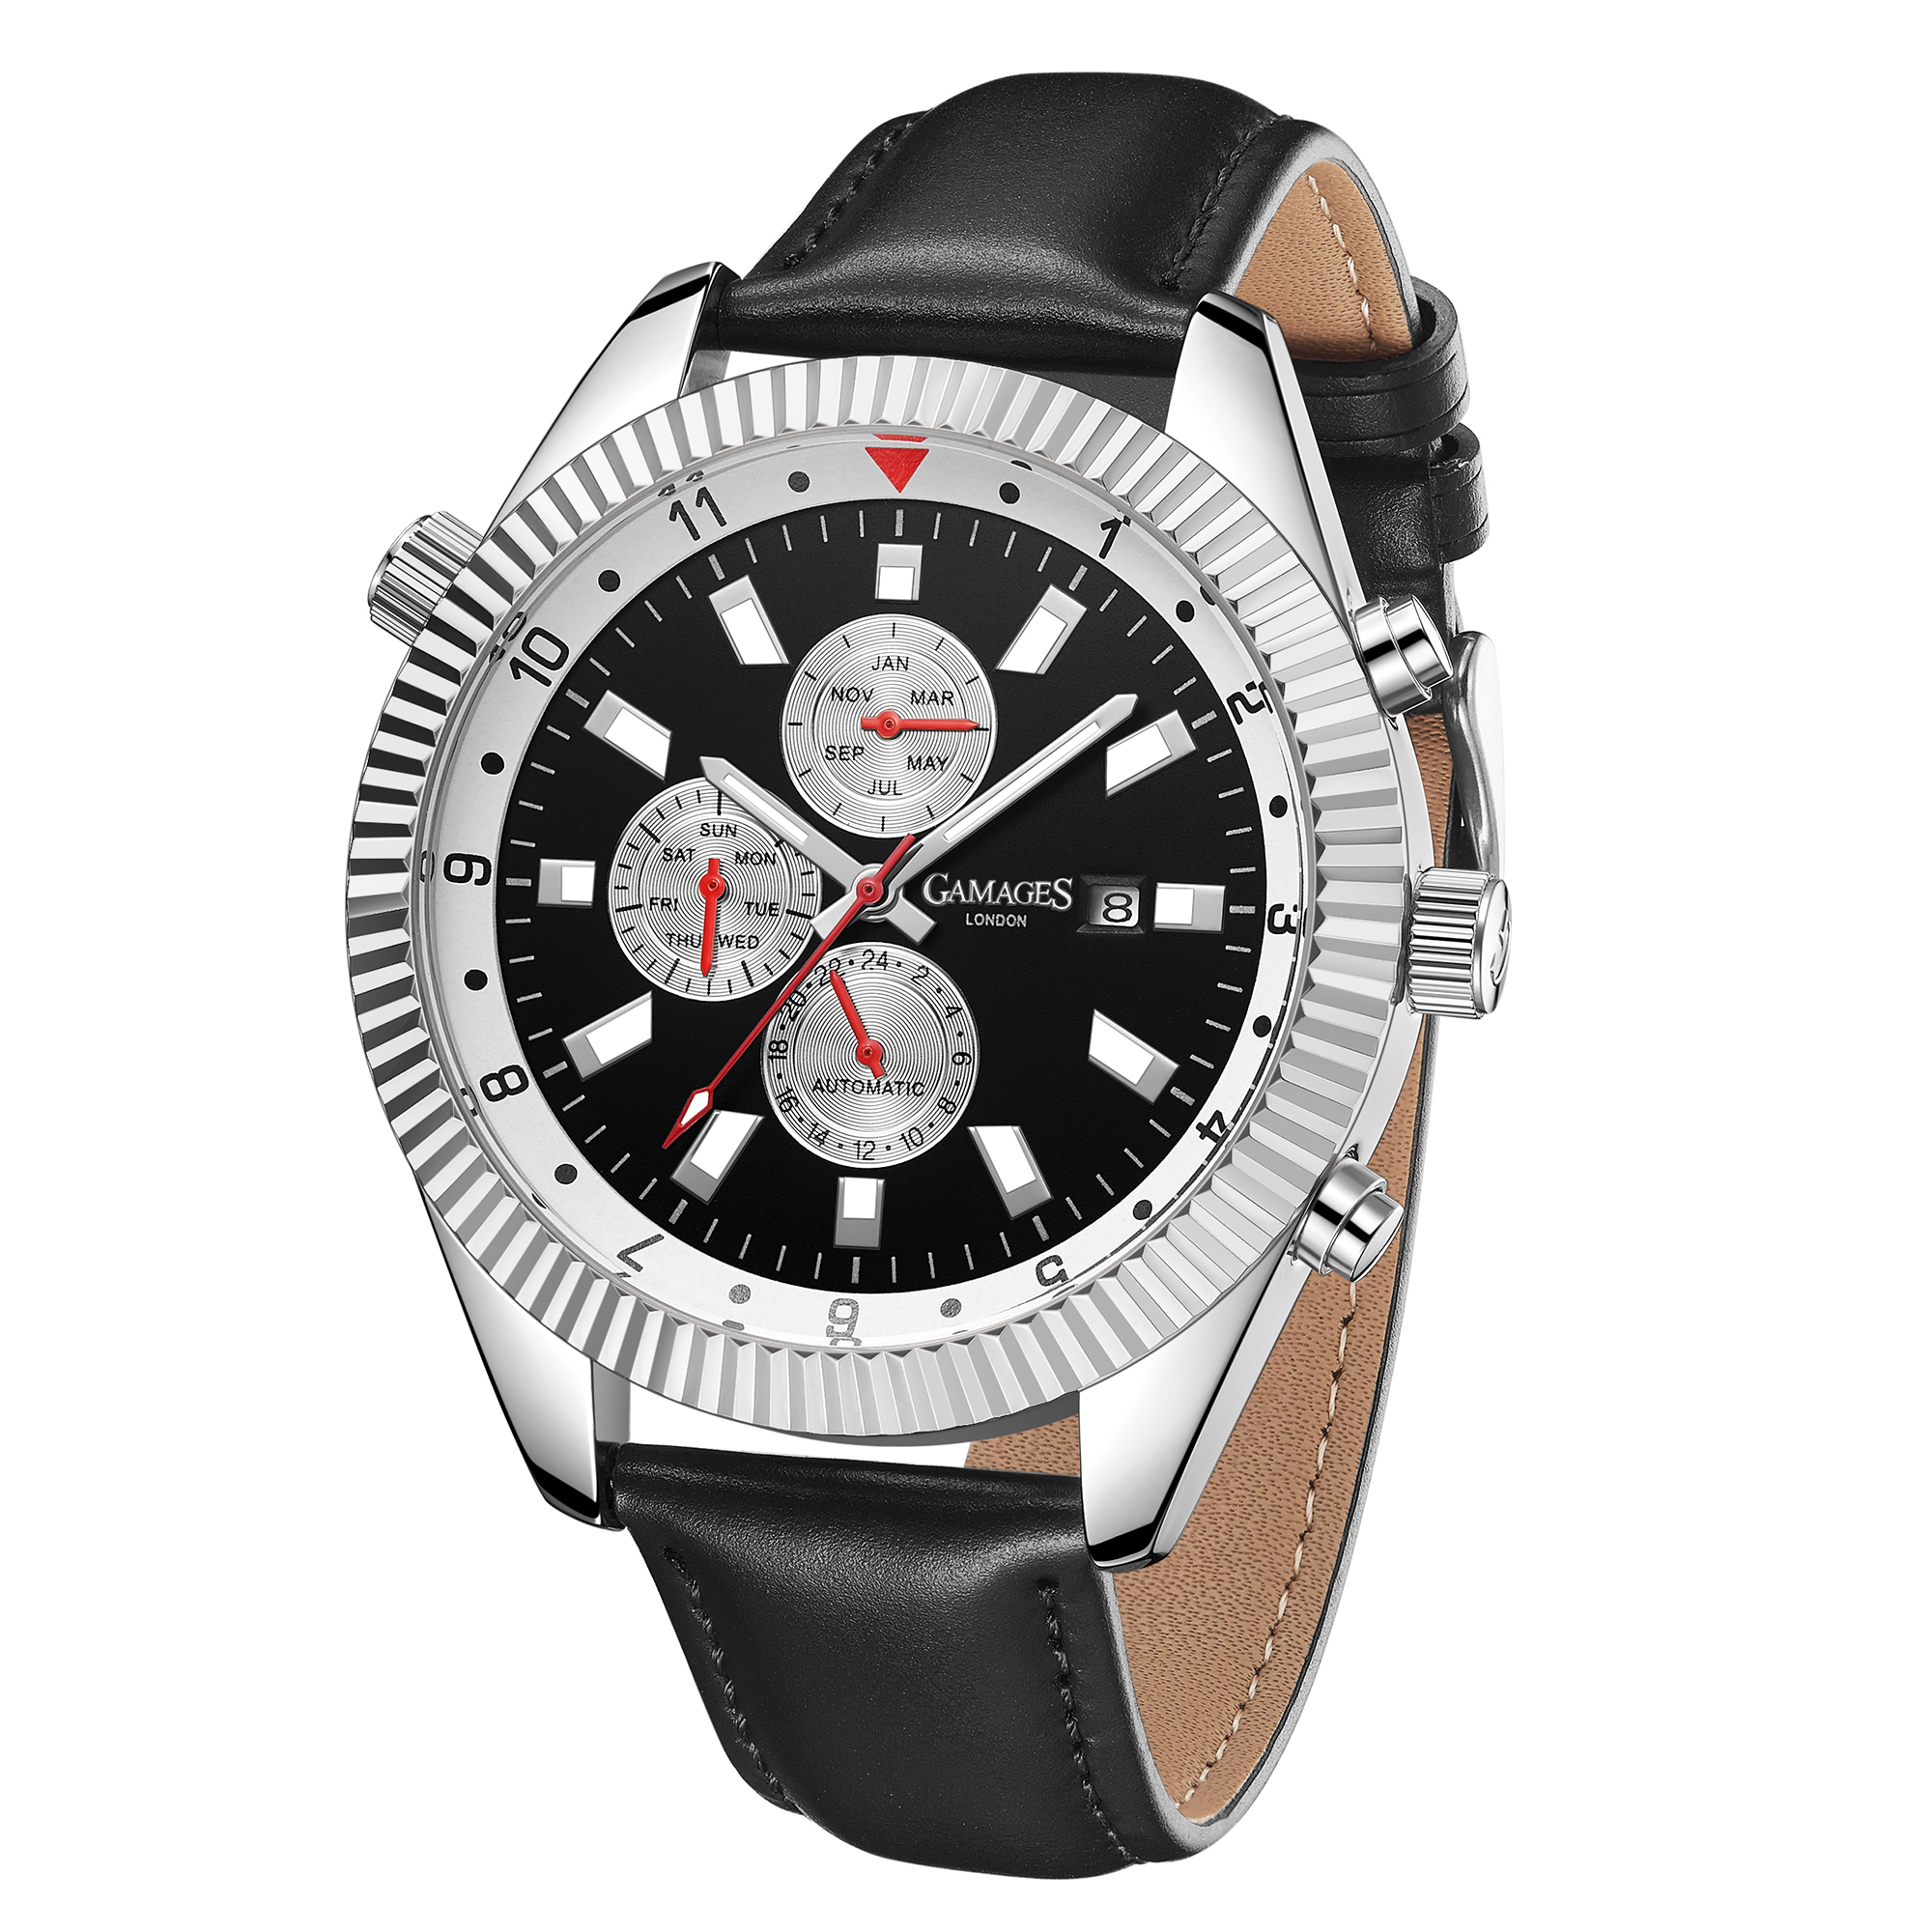 Ltd Edition Hand Assembled GAMAGES Hour Rotator Automatic Steel – 5 Year Warranty & Free Delivery - Image 5 of 5